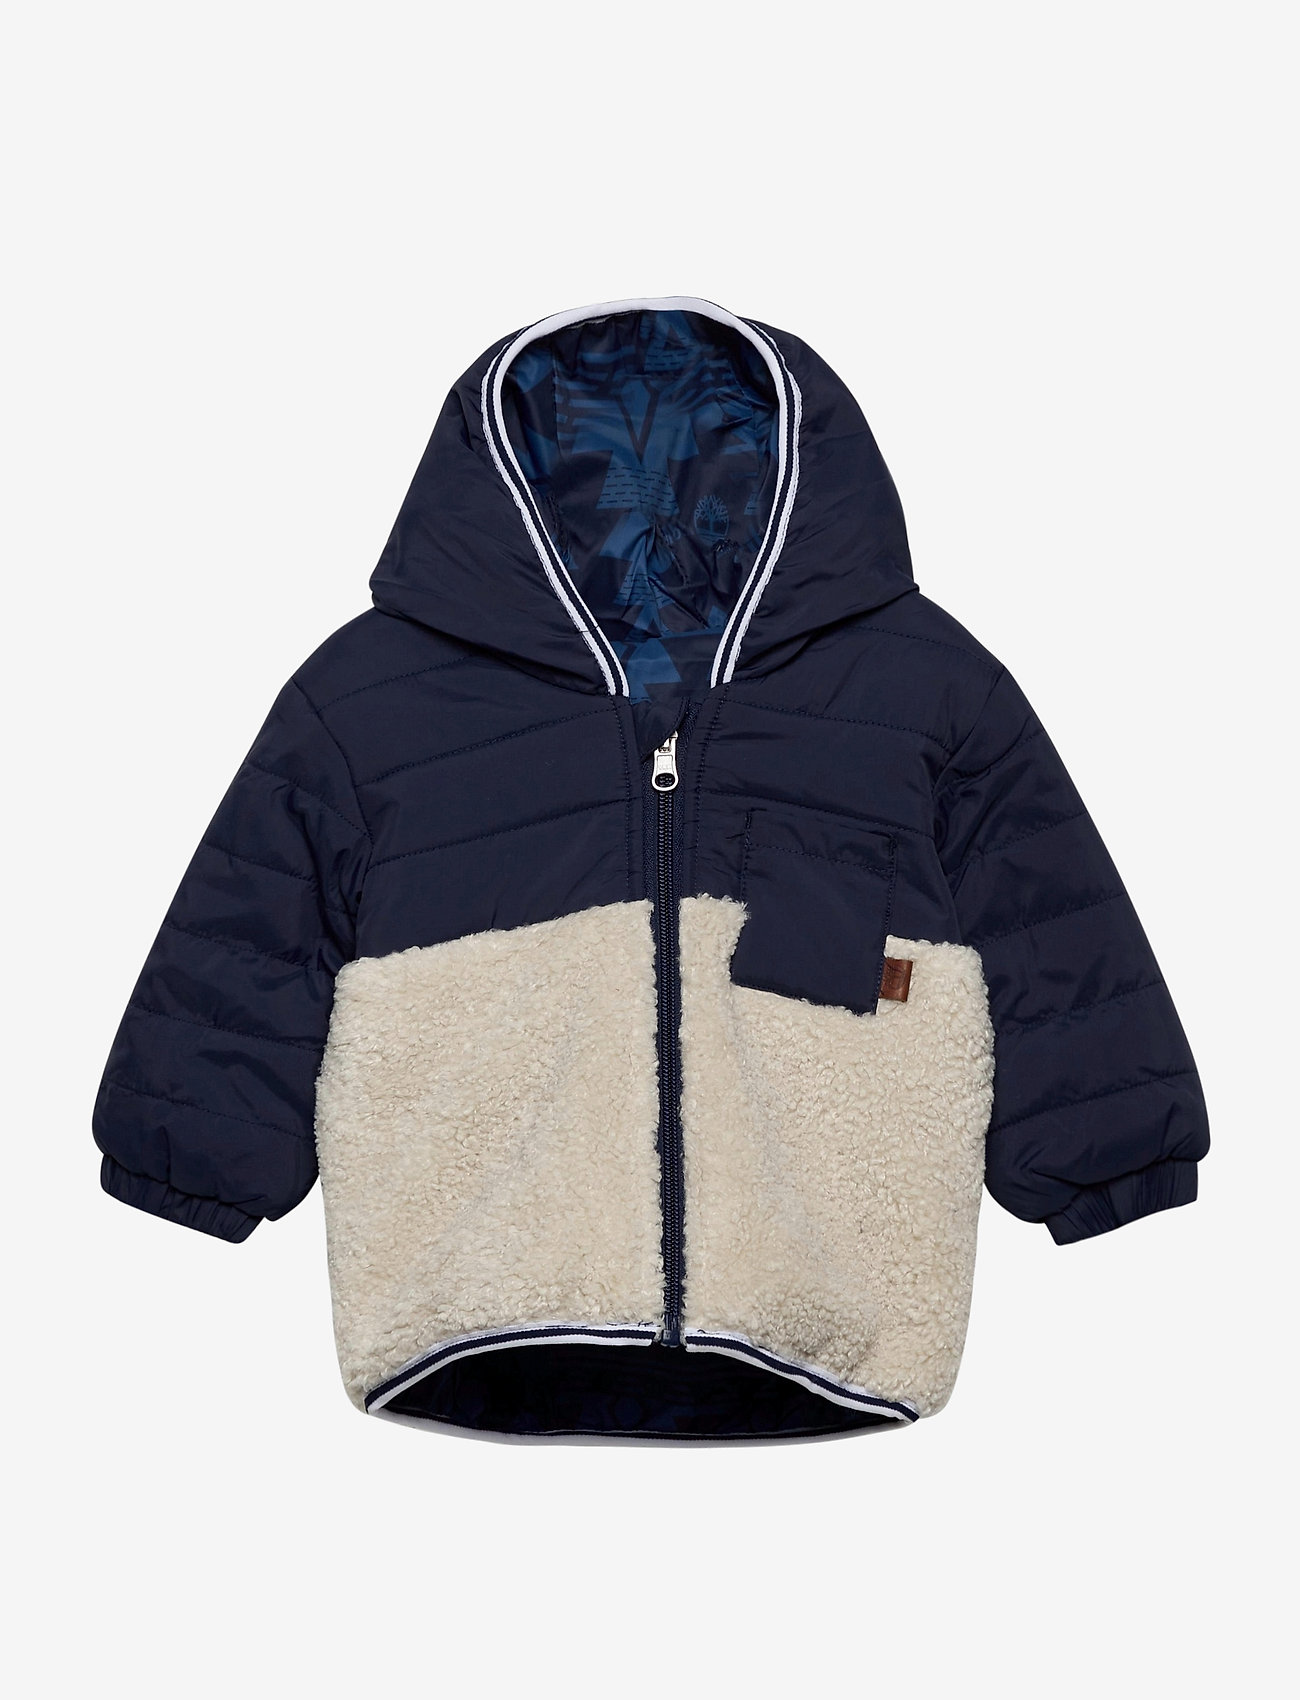 Timberland - HOODED JACKET - puffer & padded - unique - 0